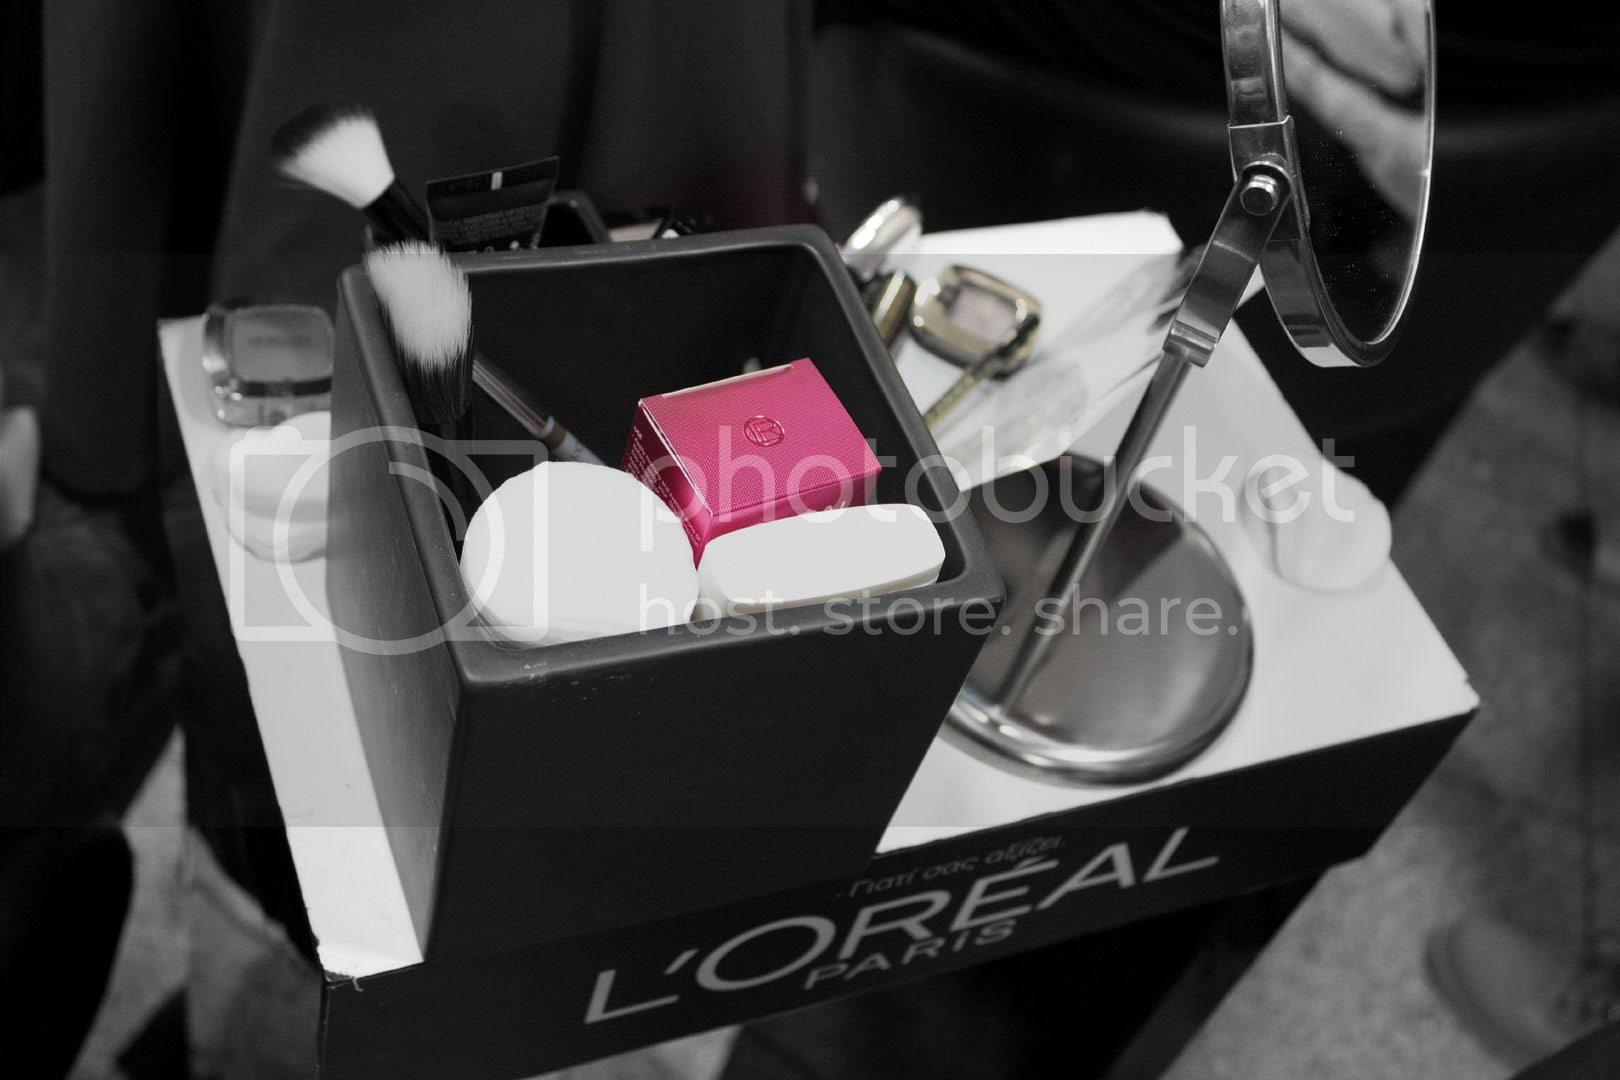 photo Loreal Beauty Products_zps3et5gjvd.jpg